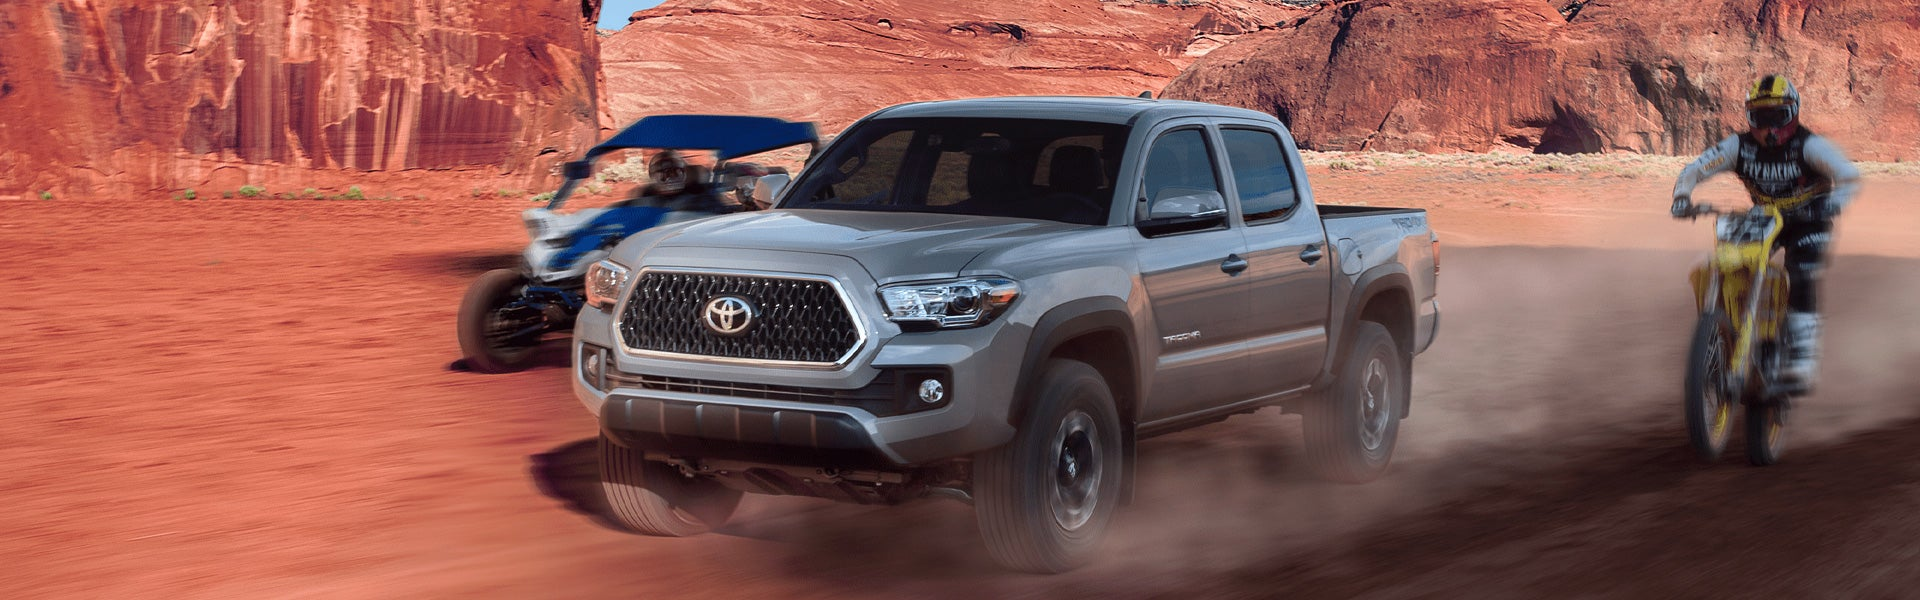 The 2019 Toyota Tacoma Model Information